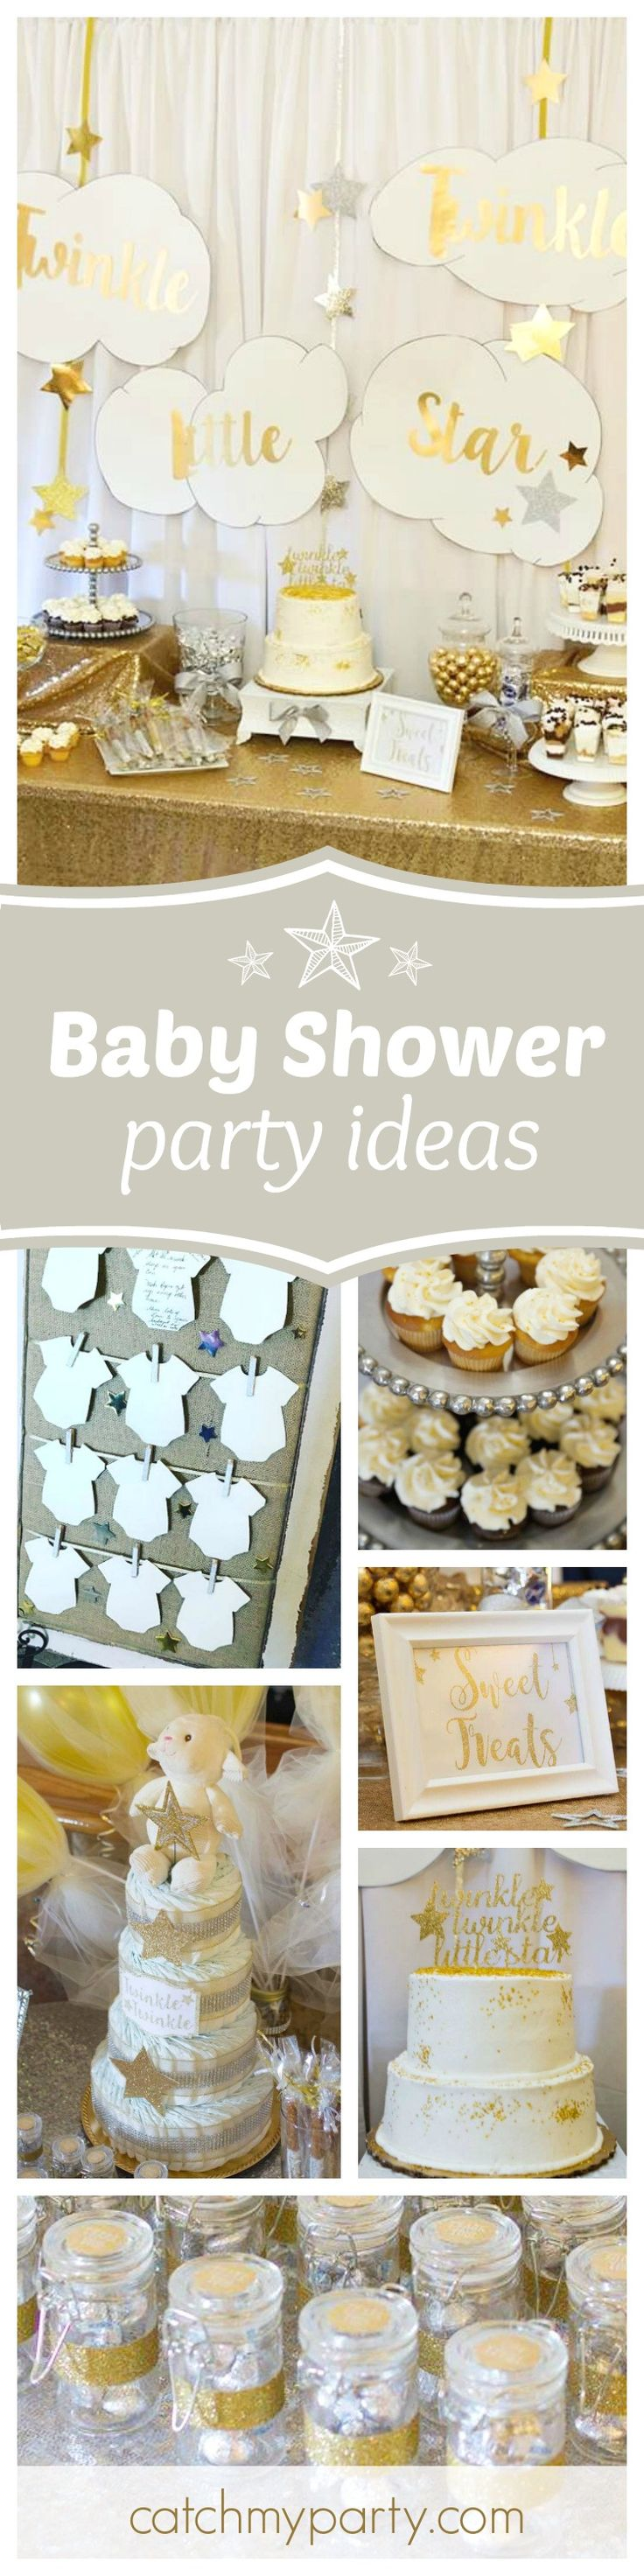 Check out this cute Twinkle twinkle little star baby shower. The cake is gorgeous! See more party ideas and share yours at CatchMyParty.com